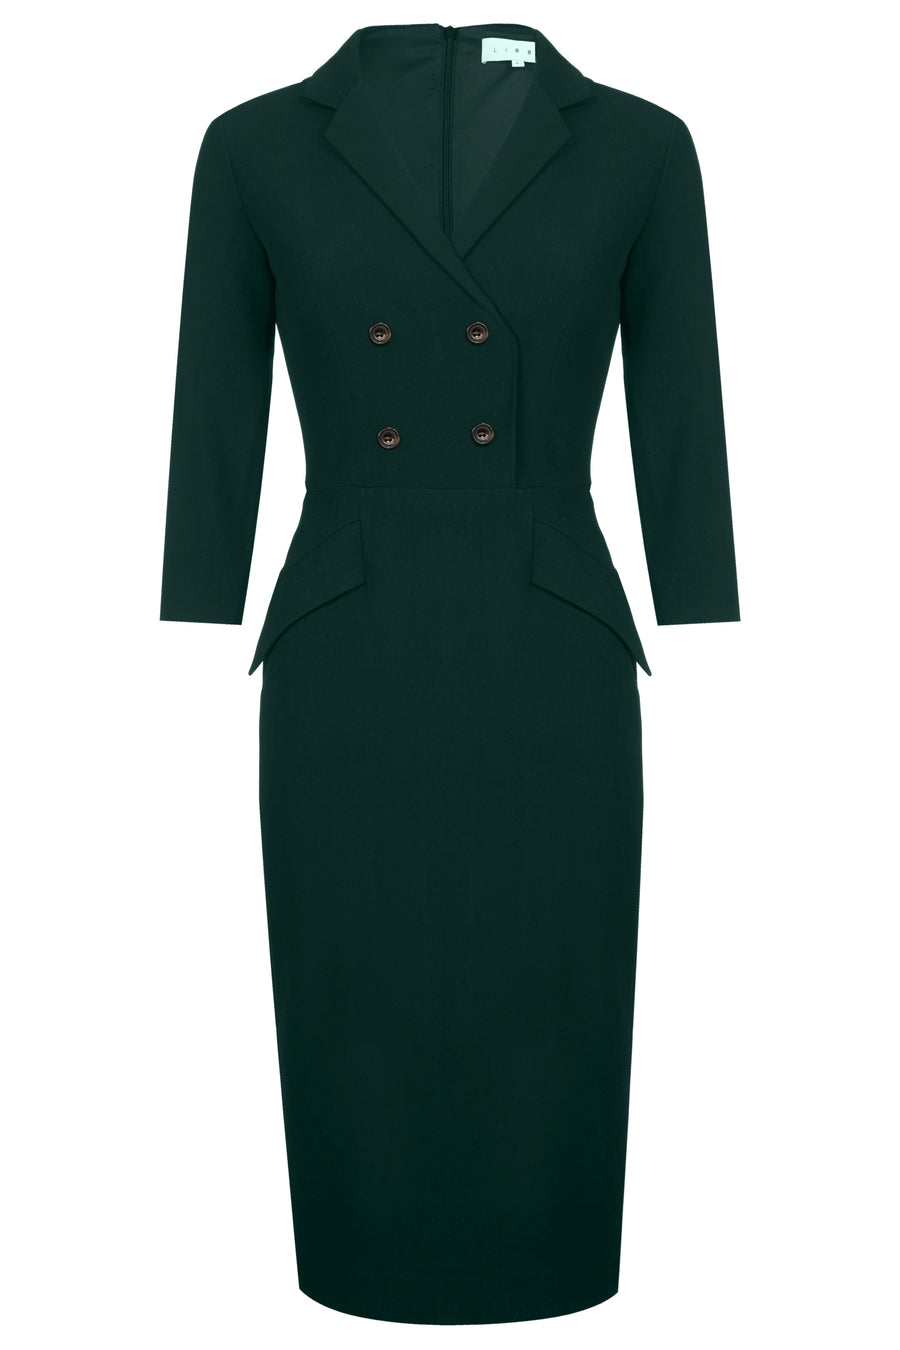 Oxford Green Dress